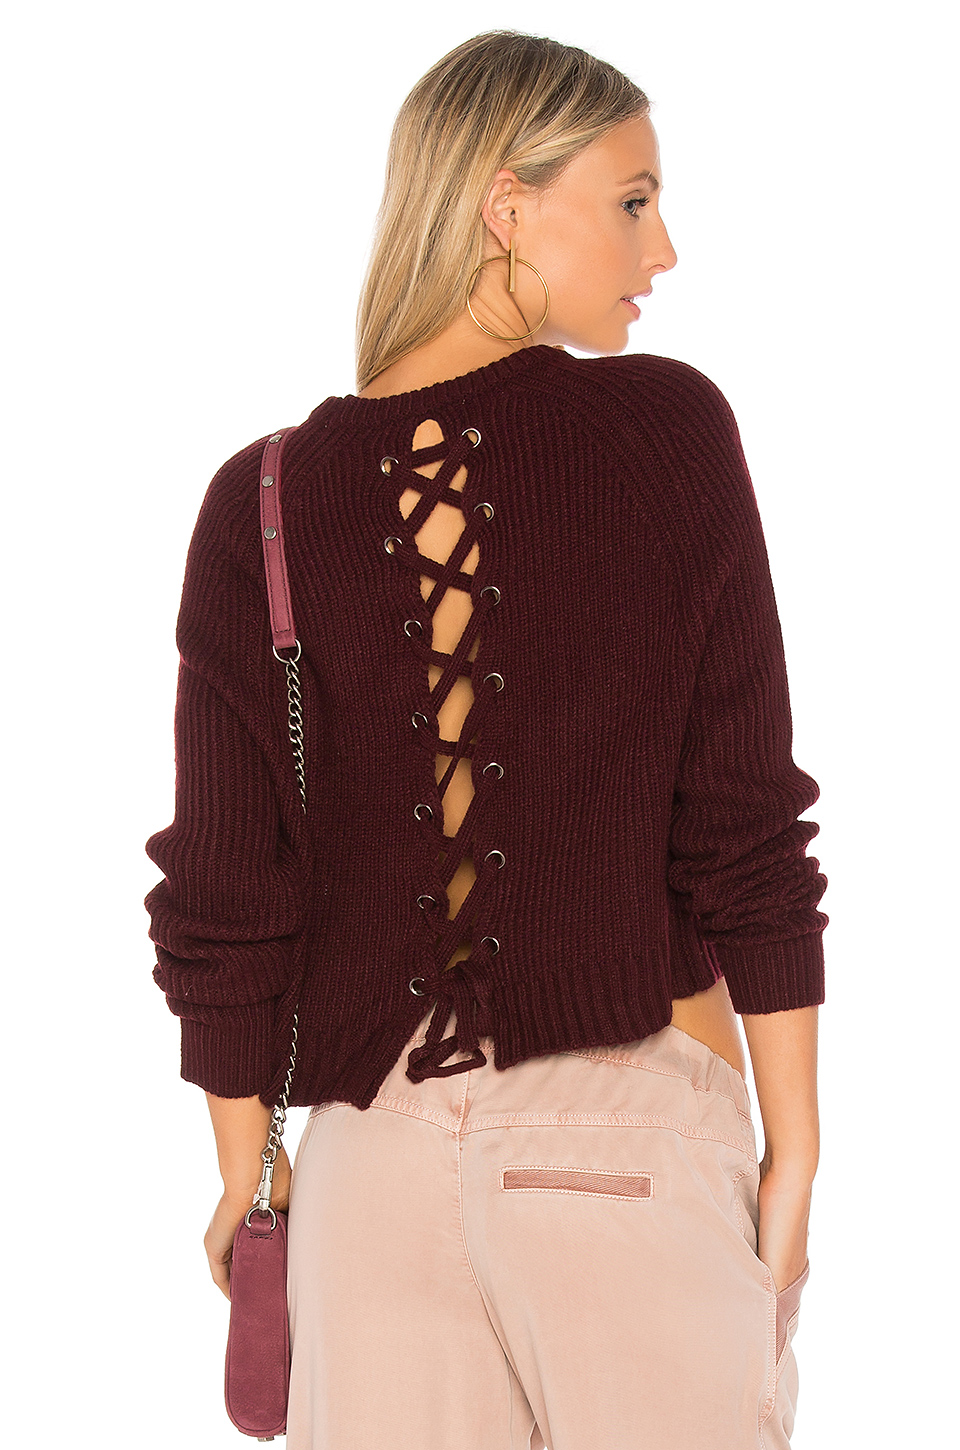 John & Jenn by Line Aisha Lace Up Back Sweater in Potion